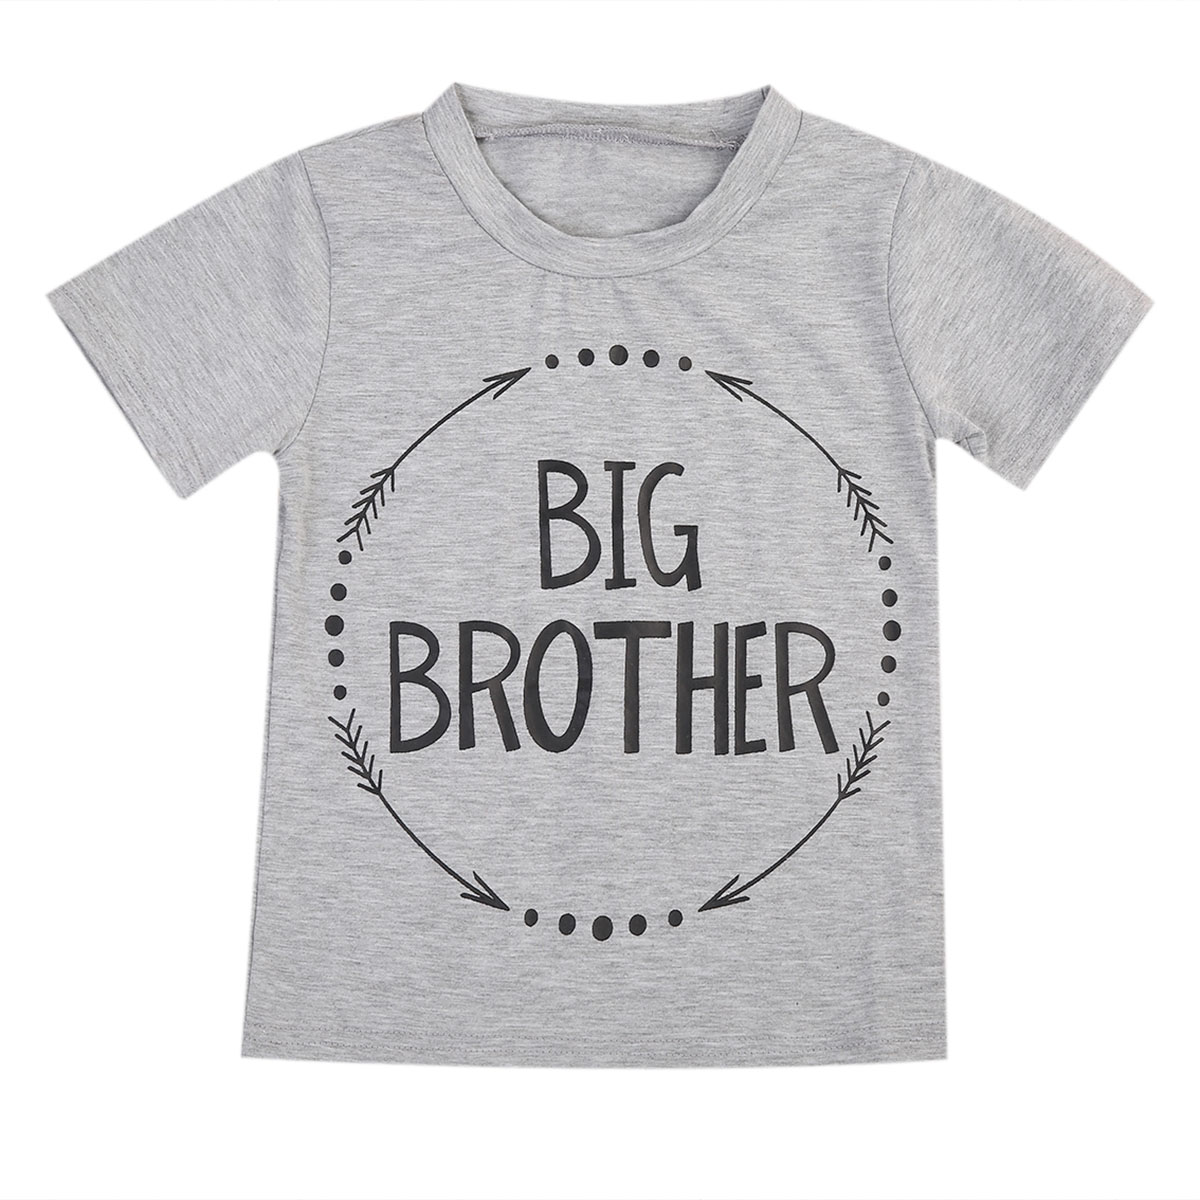 Newborn Baby Boys Kids Clothing Top T-Shirt Short Sleeve Cotton Letter Outfit Clothes Tops Boy